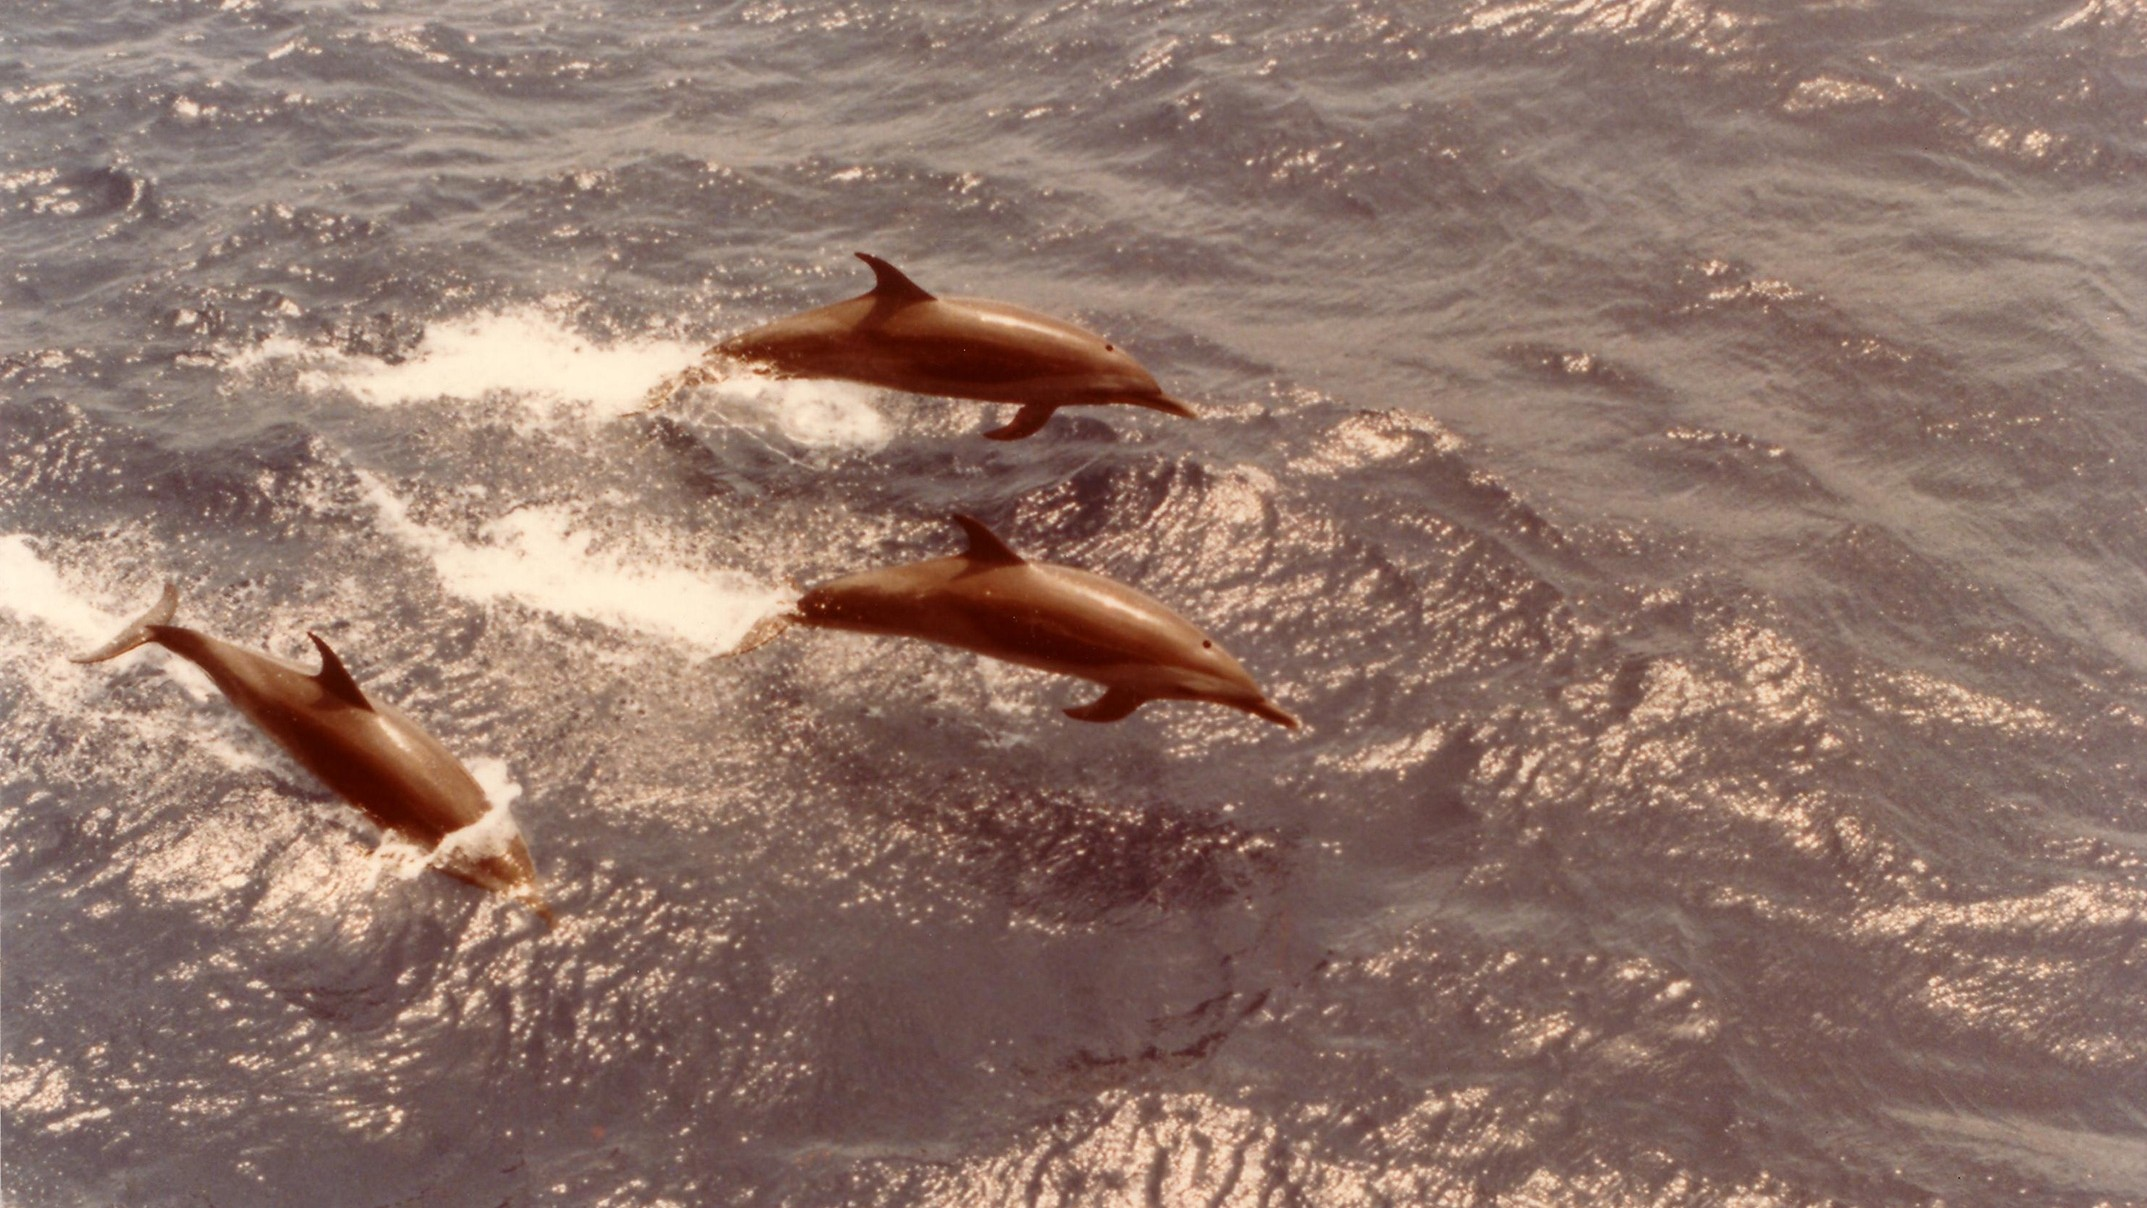 Dolphins Deserve the Rights of Non-Human Persons, Says Romanian Politician